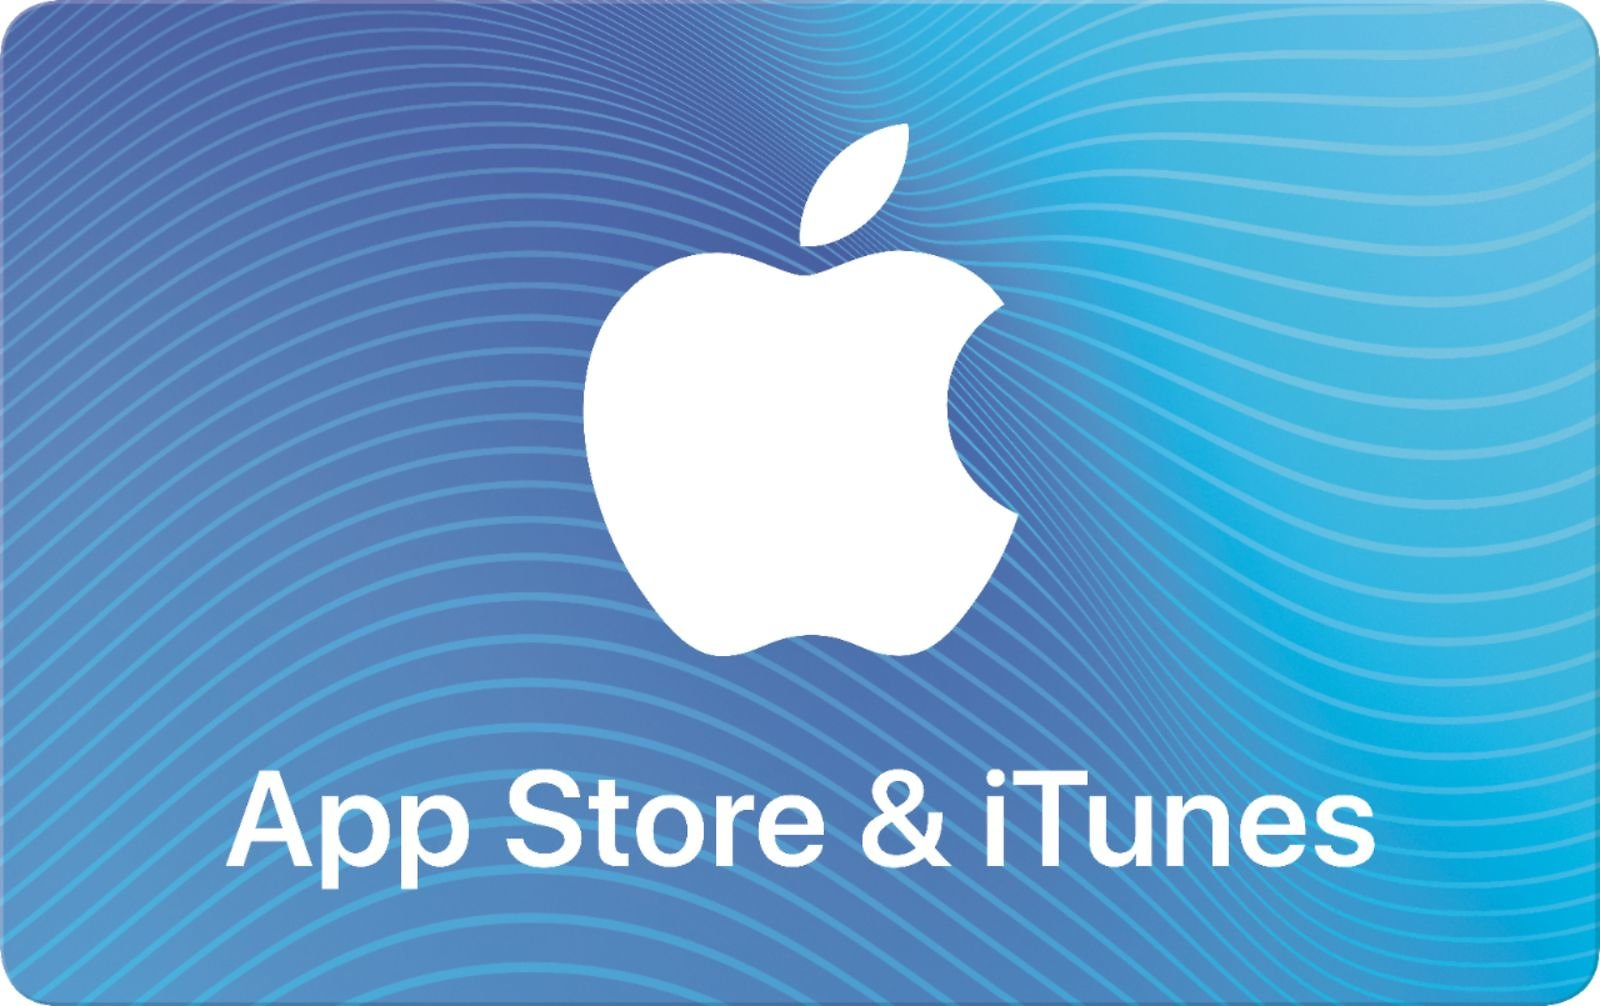 FREE $15 Best Buy EGift Card with The Purchase of a $100 Apple ITunes EGift Card.